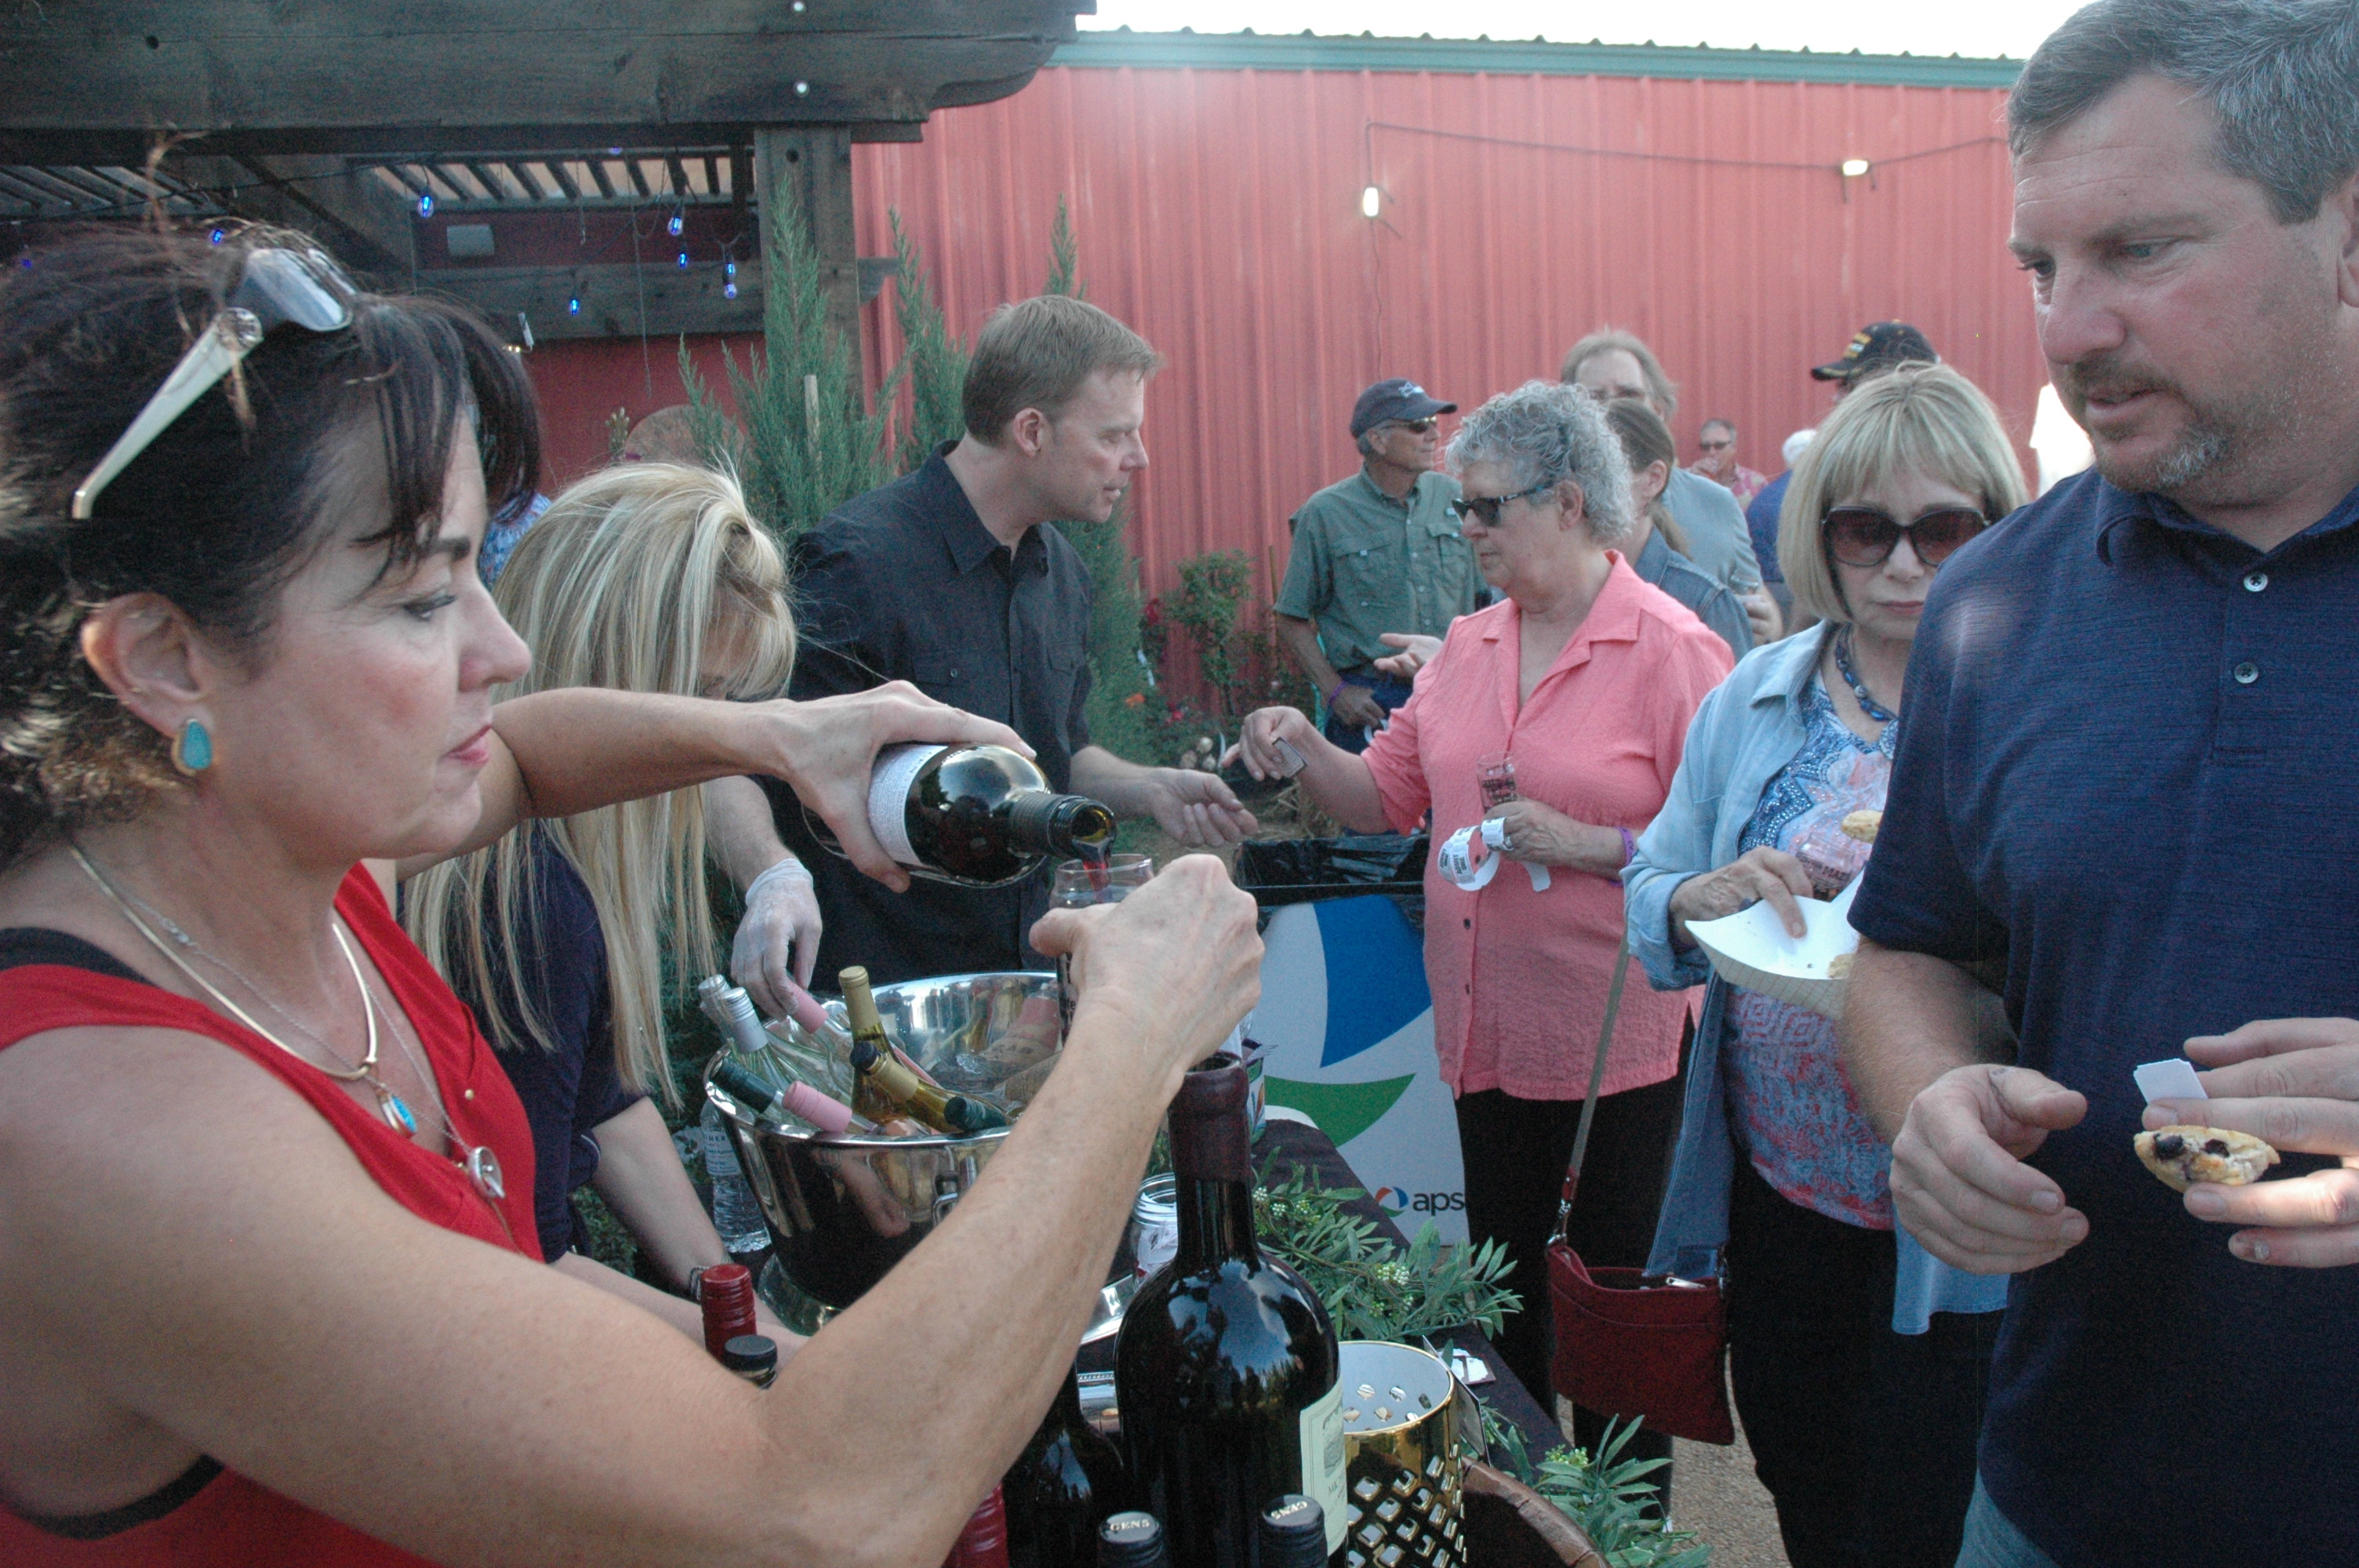 2nd annual Wine, Bites and Brew goes well, organizer says